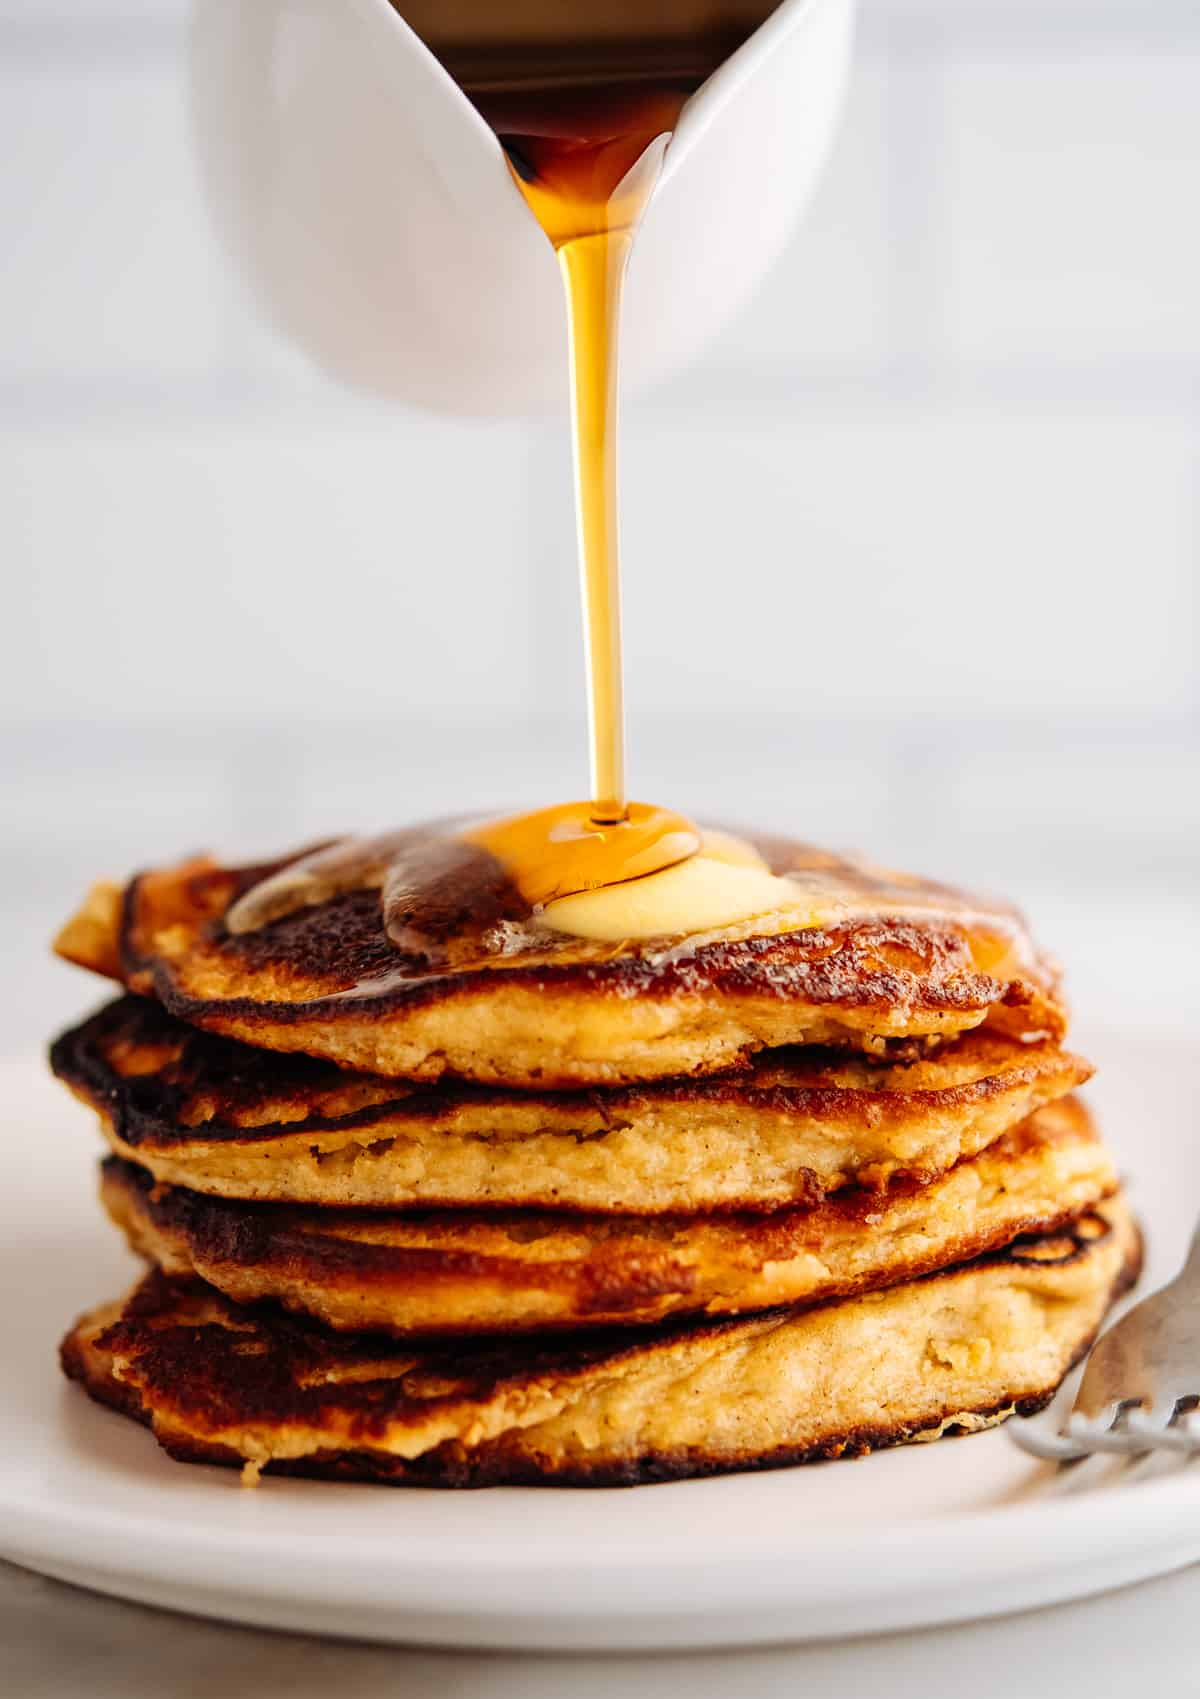 pouring maple syrup over a stack of Almond Flour Banana Pancakes